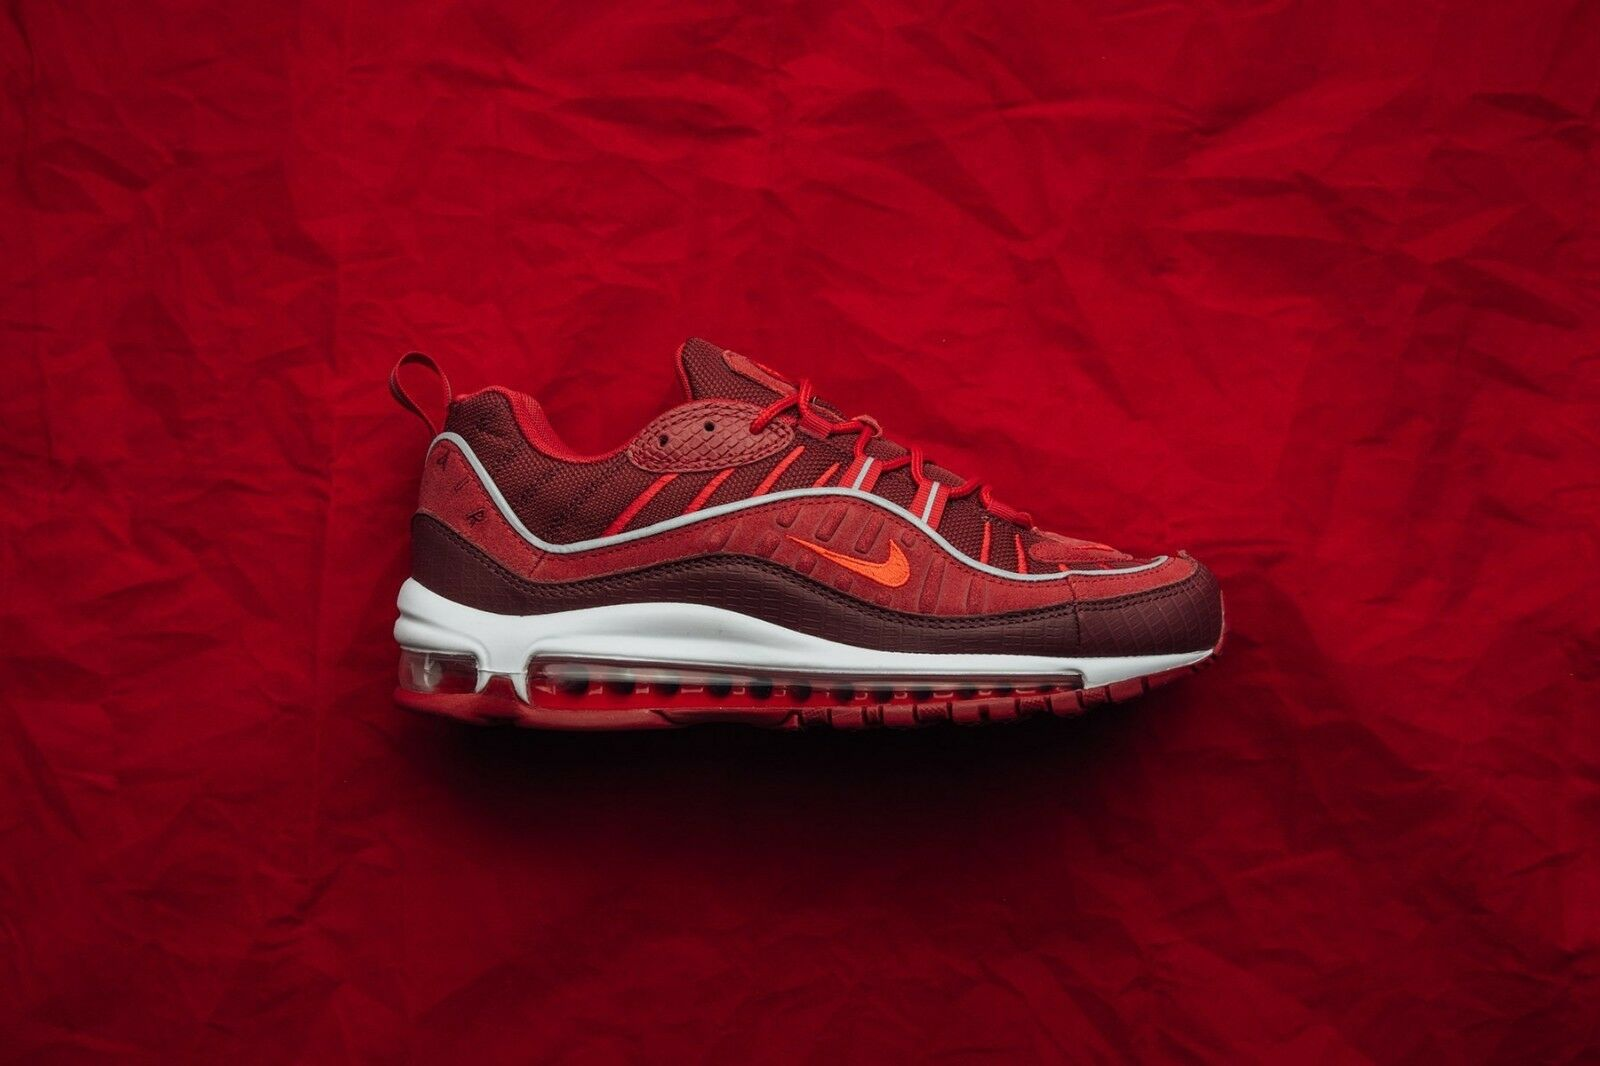 Nike Air Max 98 SE size 12.5. Team Gym Red. Triple Red. AO9380-600. 95 97 Cheap women's shoes women's shoes